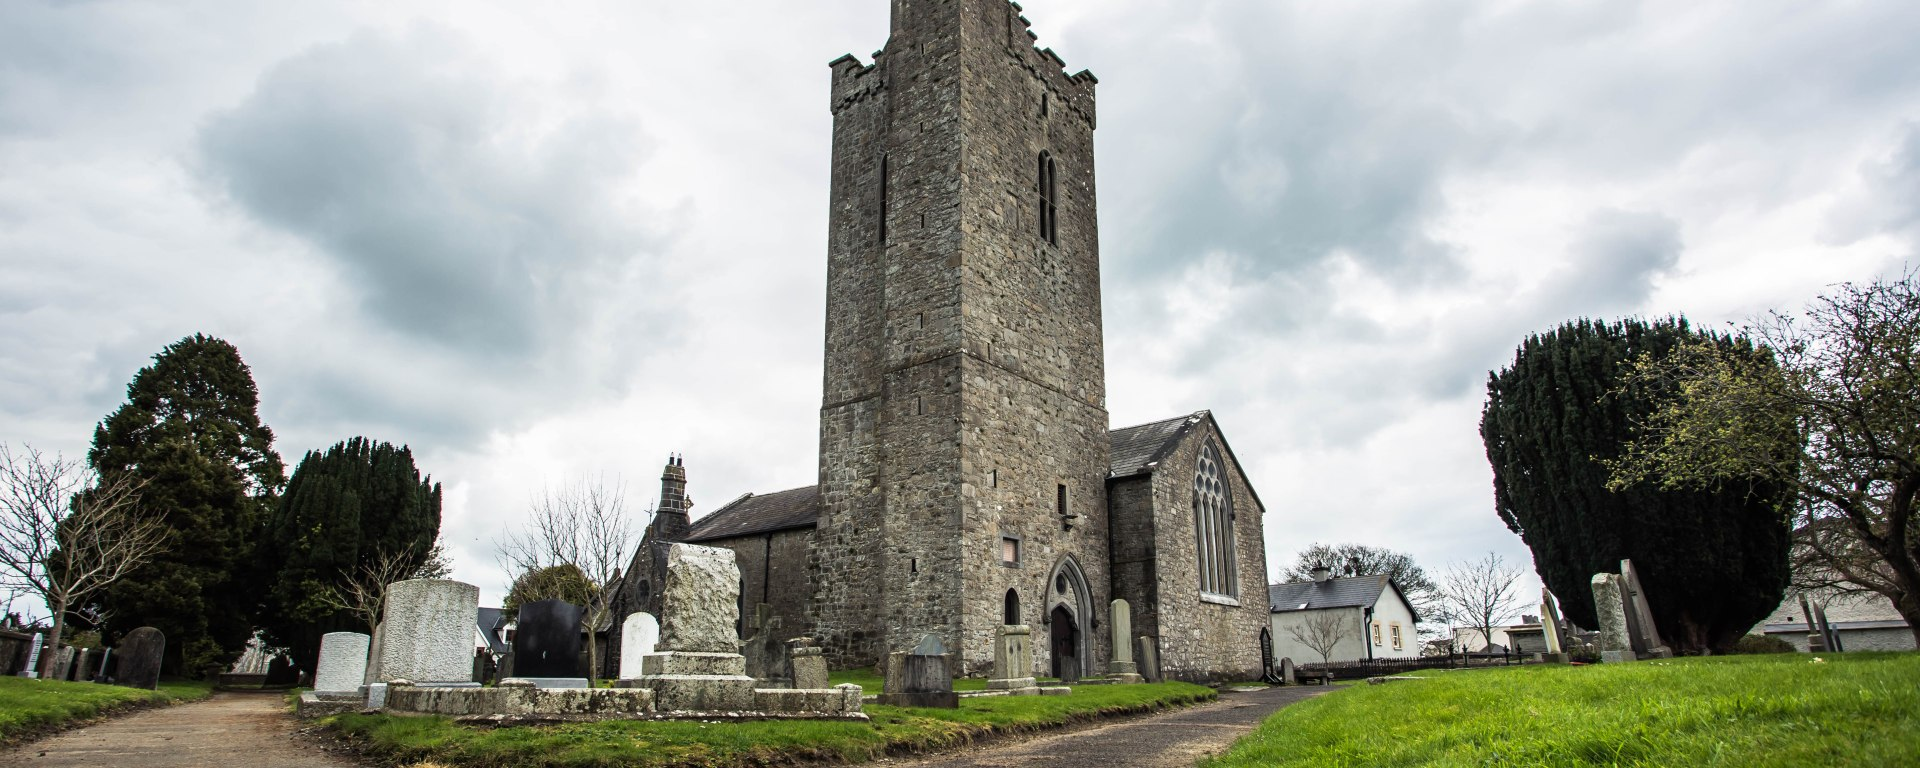 St Patrick's Cathedral, Trim